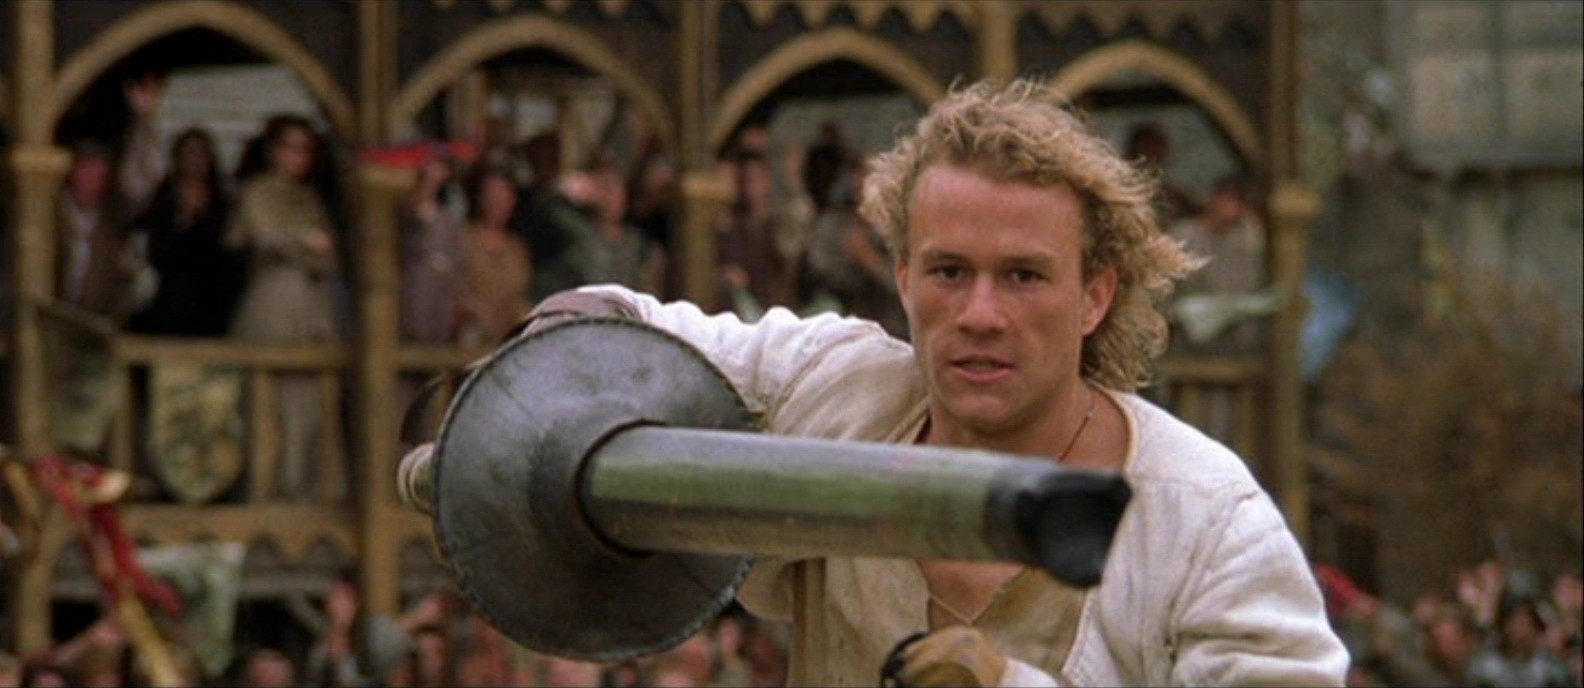 A Knight's Tale shows us what true love is | by Robert Heckert | Medium